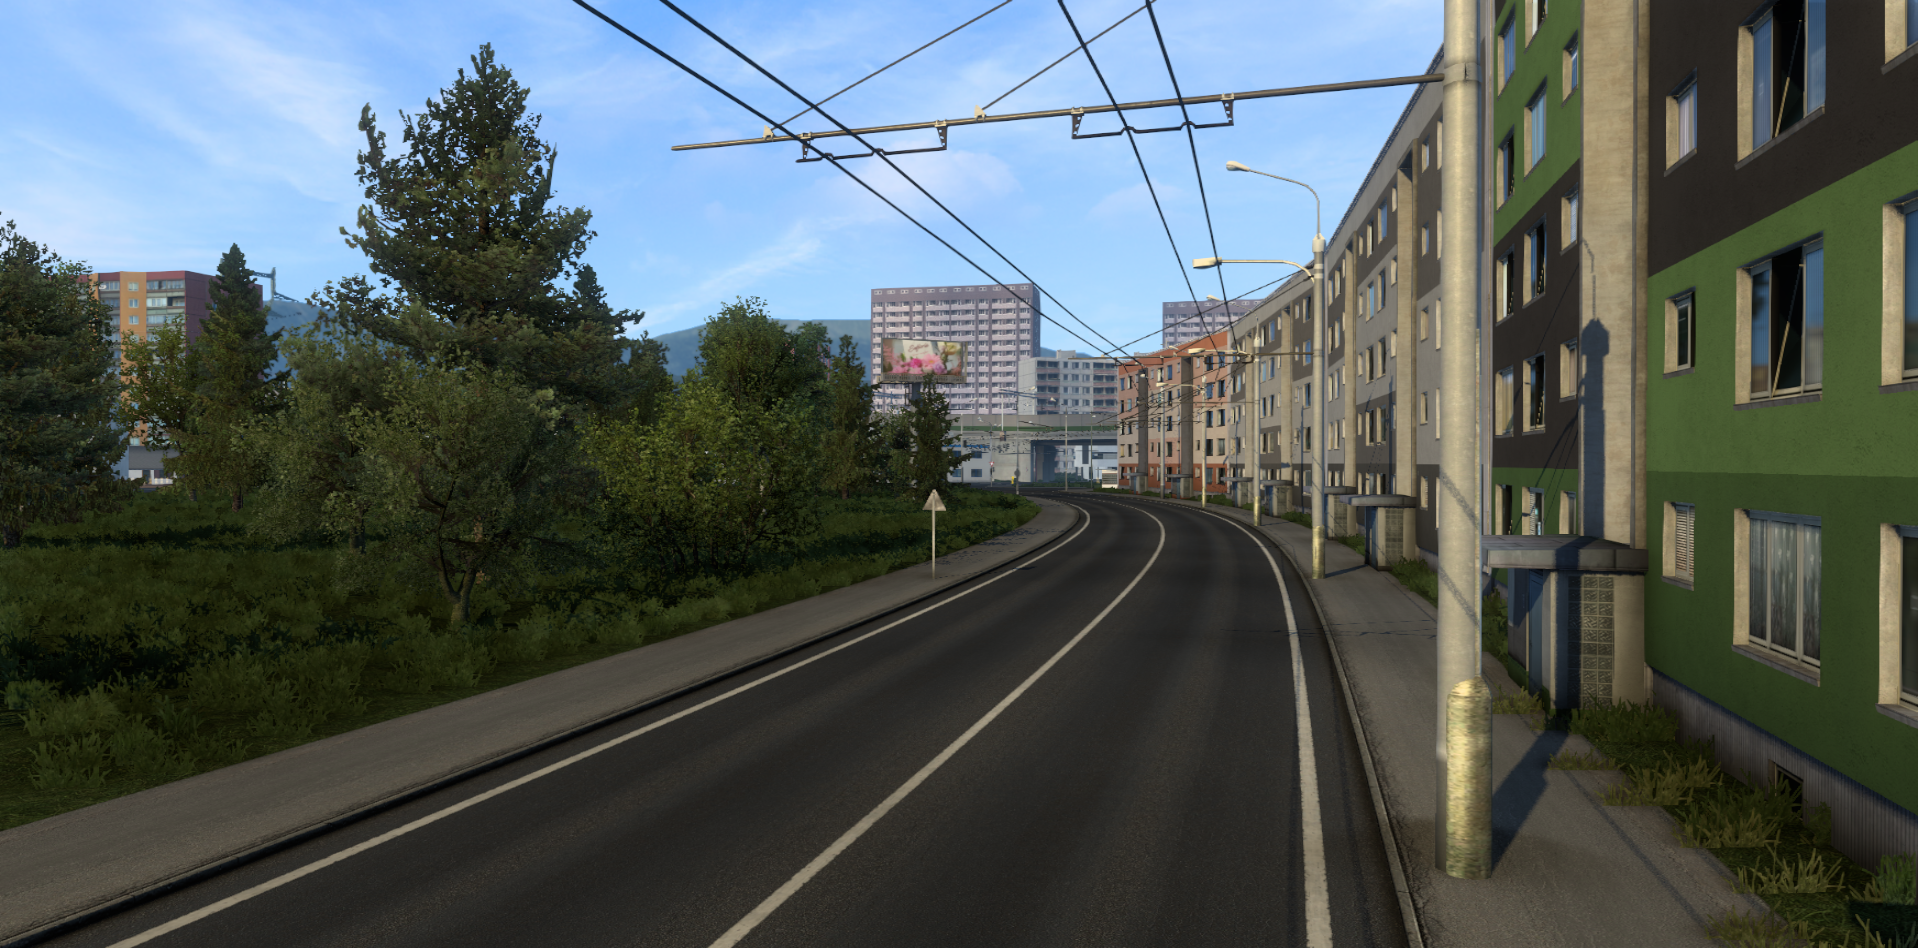 ets2_20210326_204040_00.png